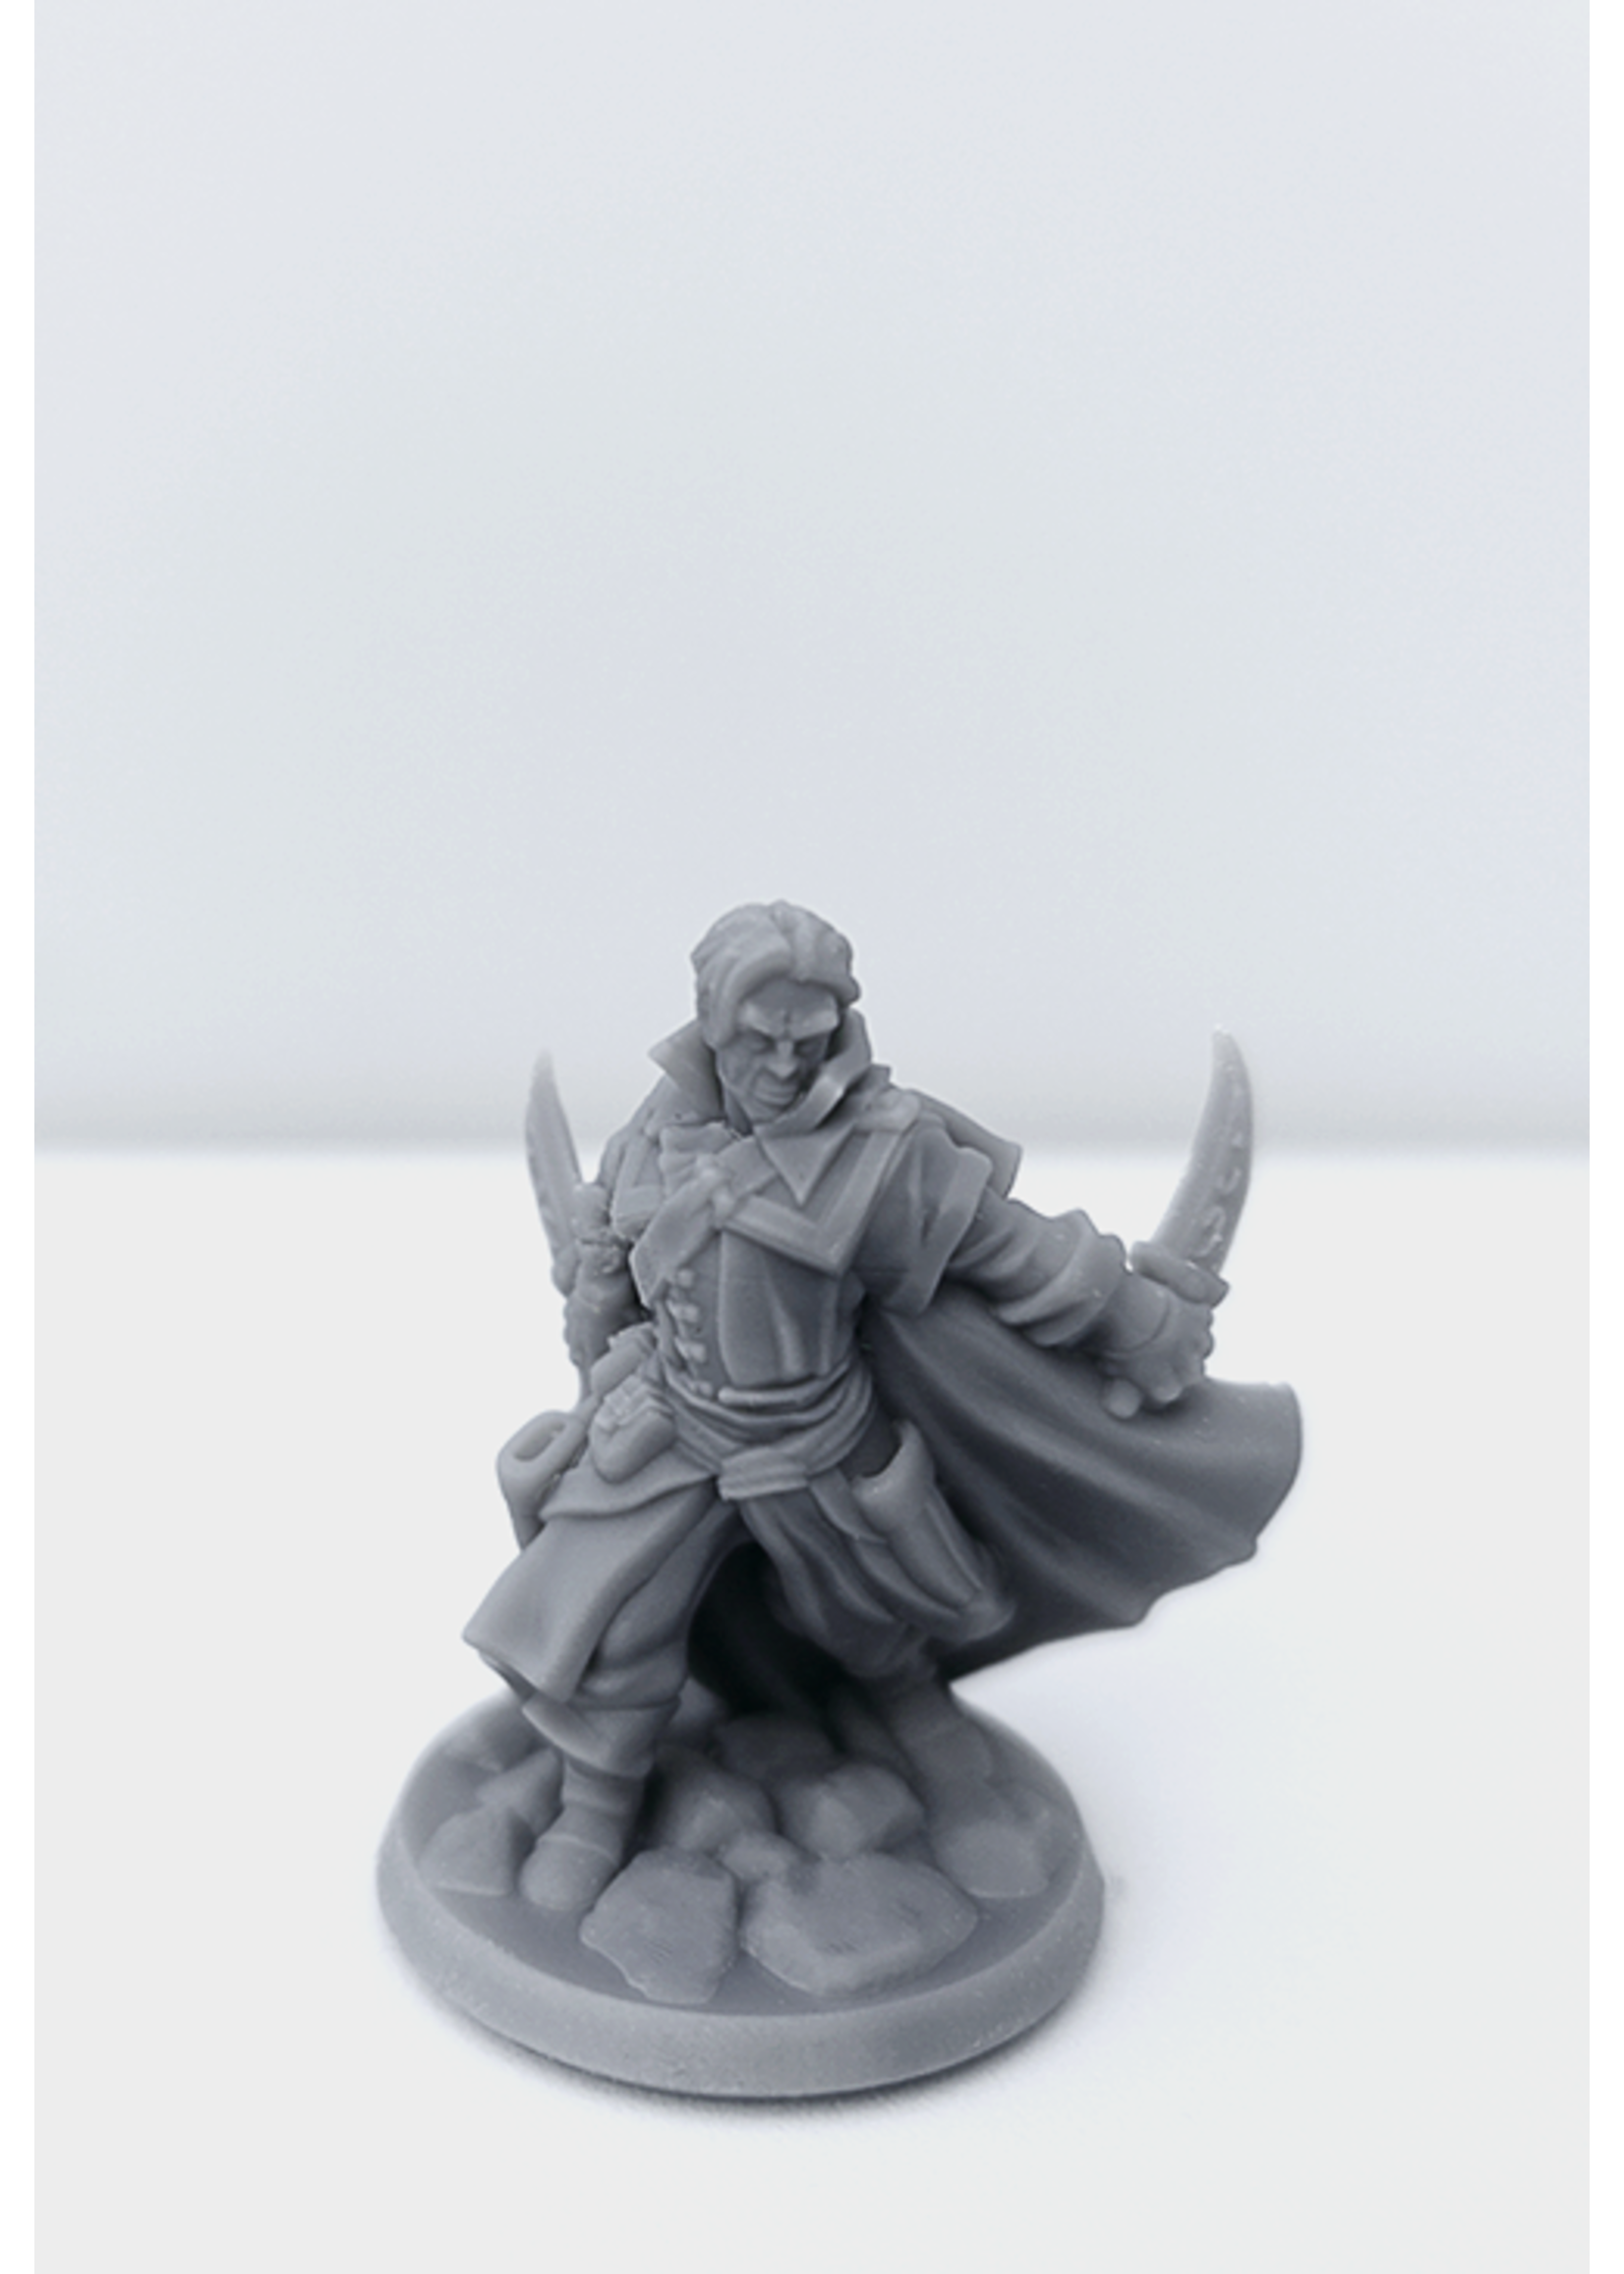 3D Printed Miniature - Thief Male 02 - Dungeons & Dragons - Hero of the Realm KS